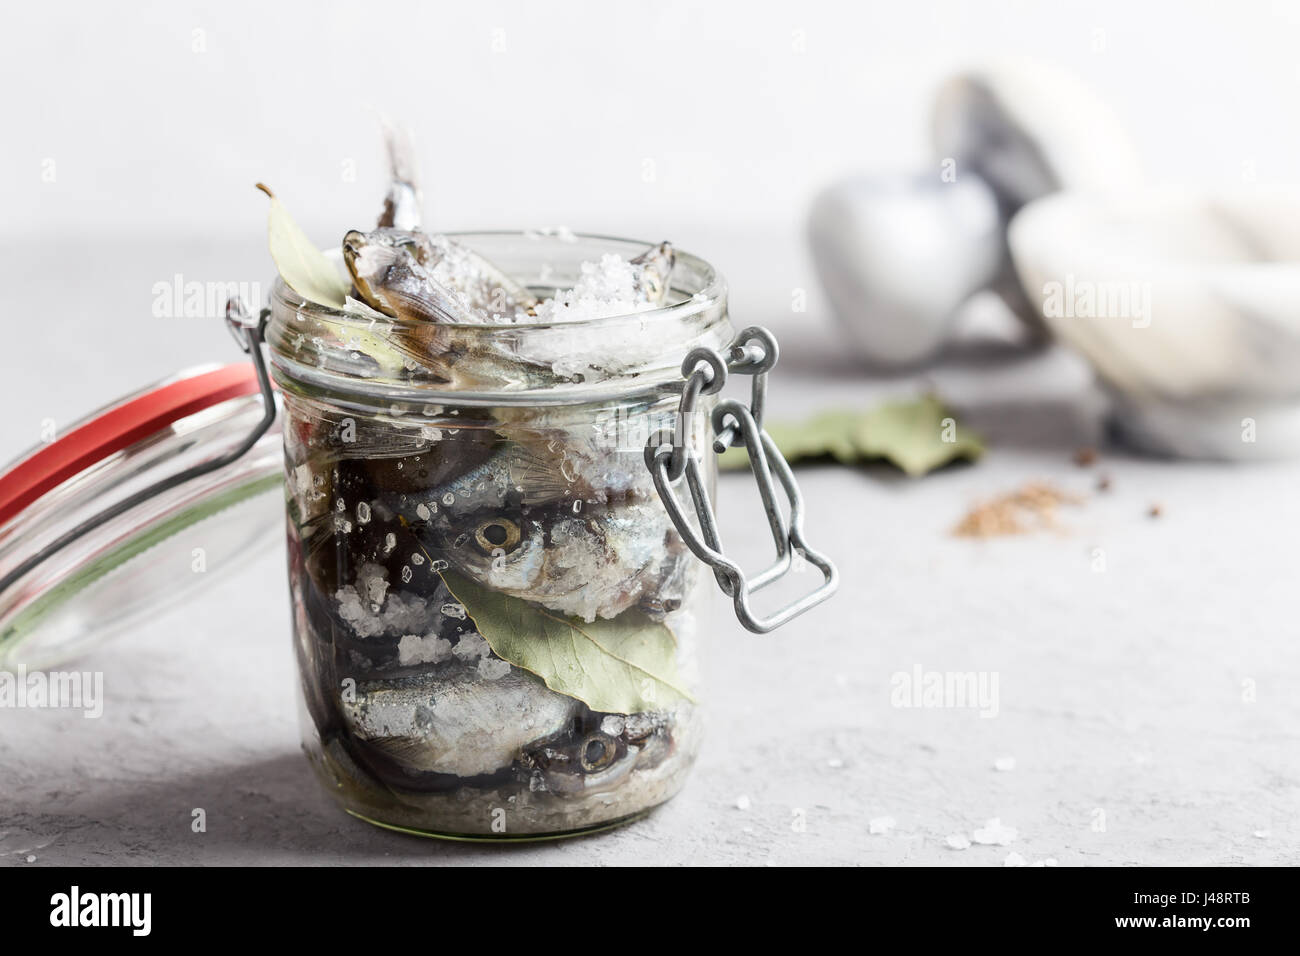 Preparing the salted capelin. Fish preserved for eating - Stock Image